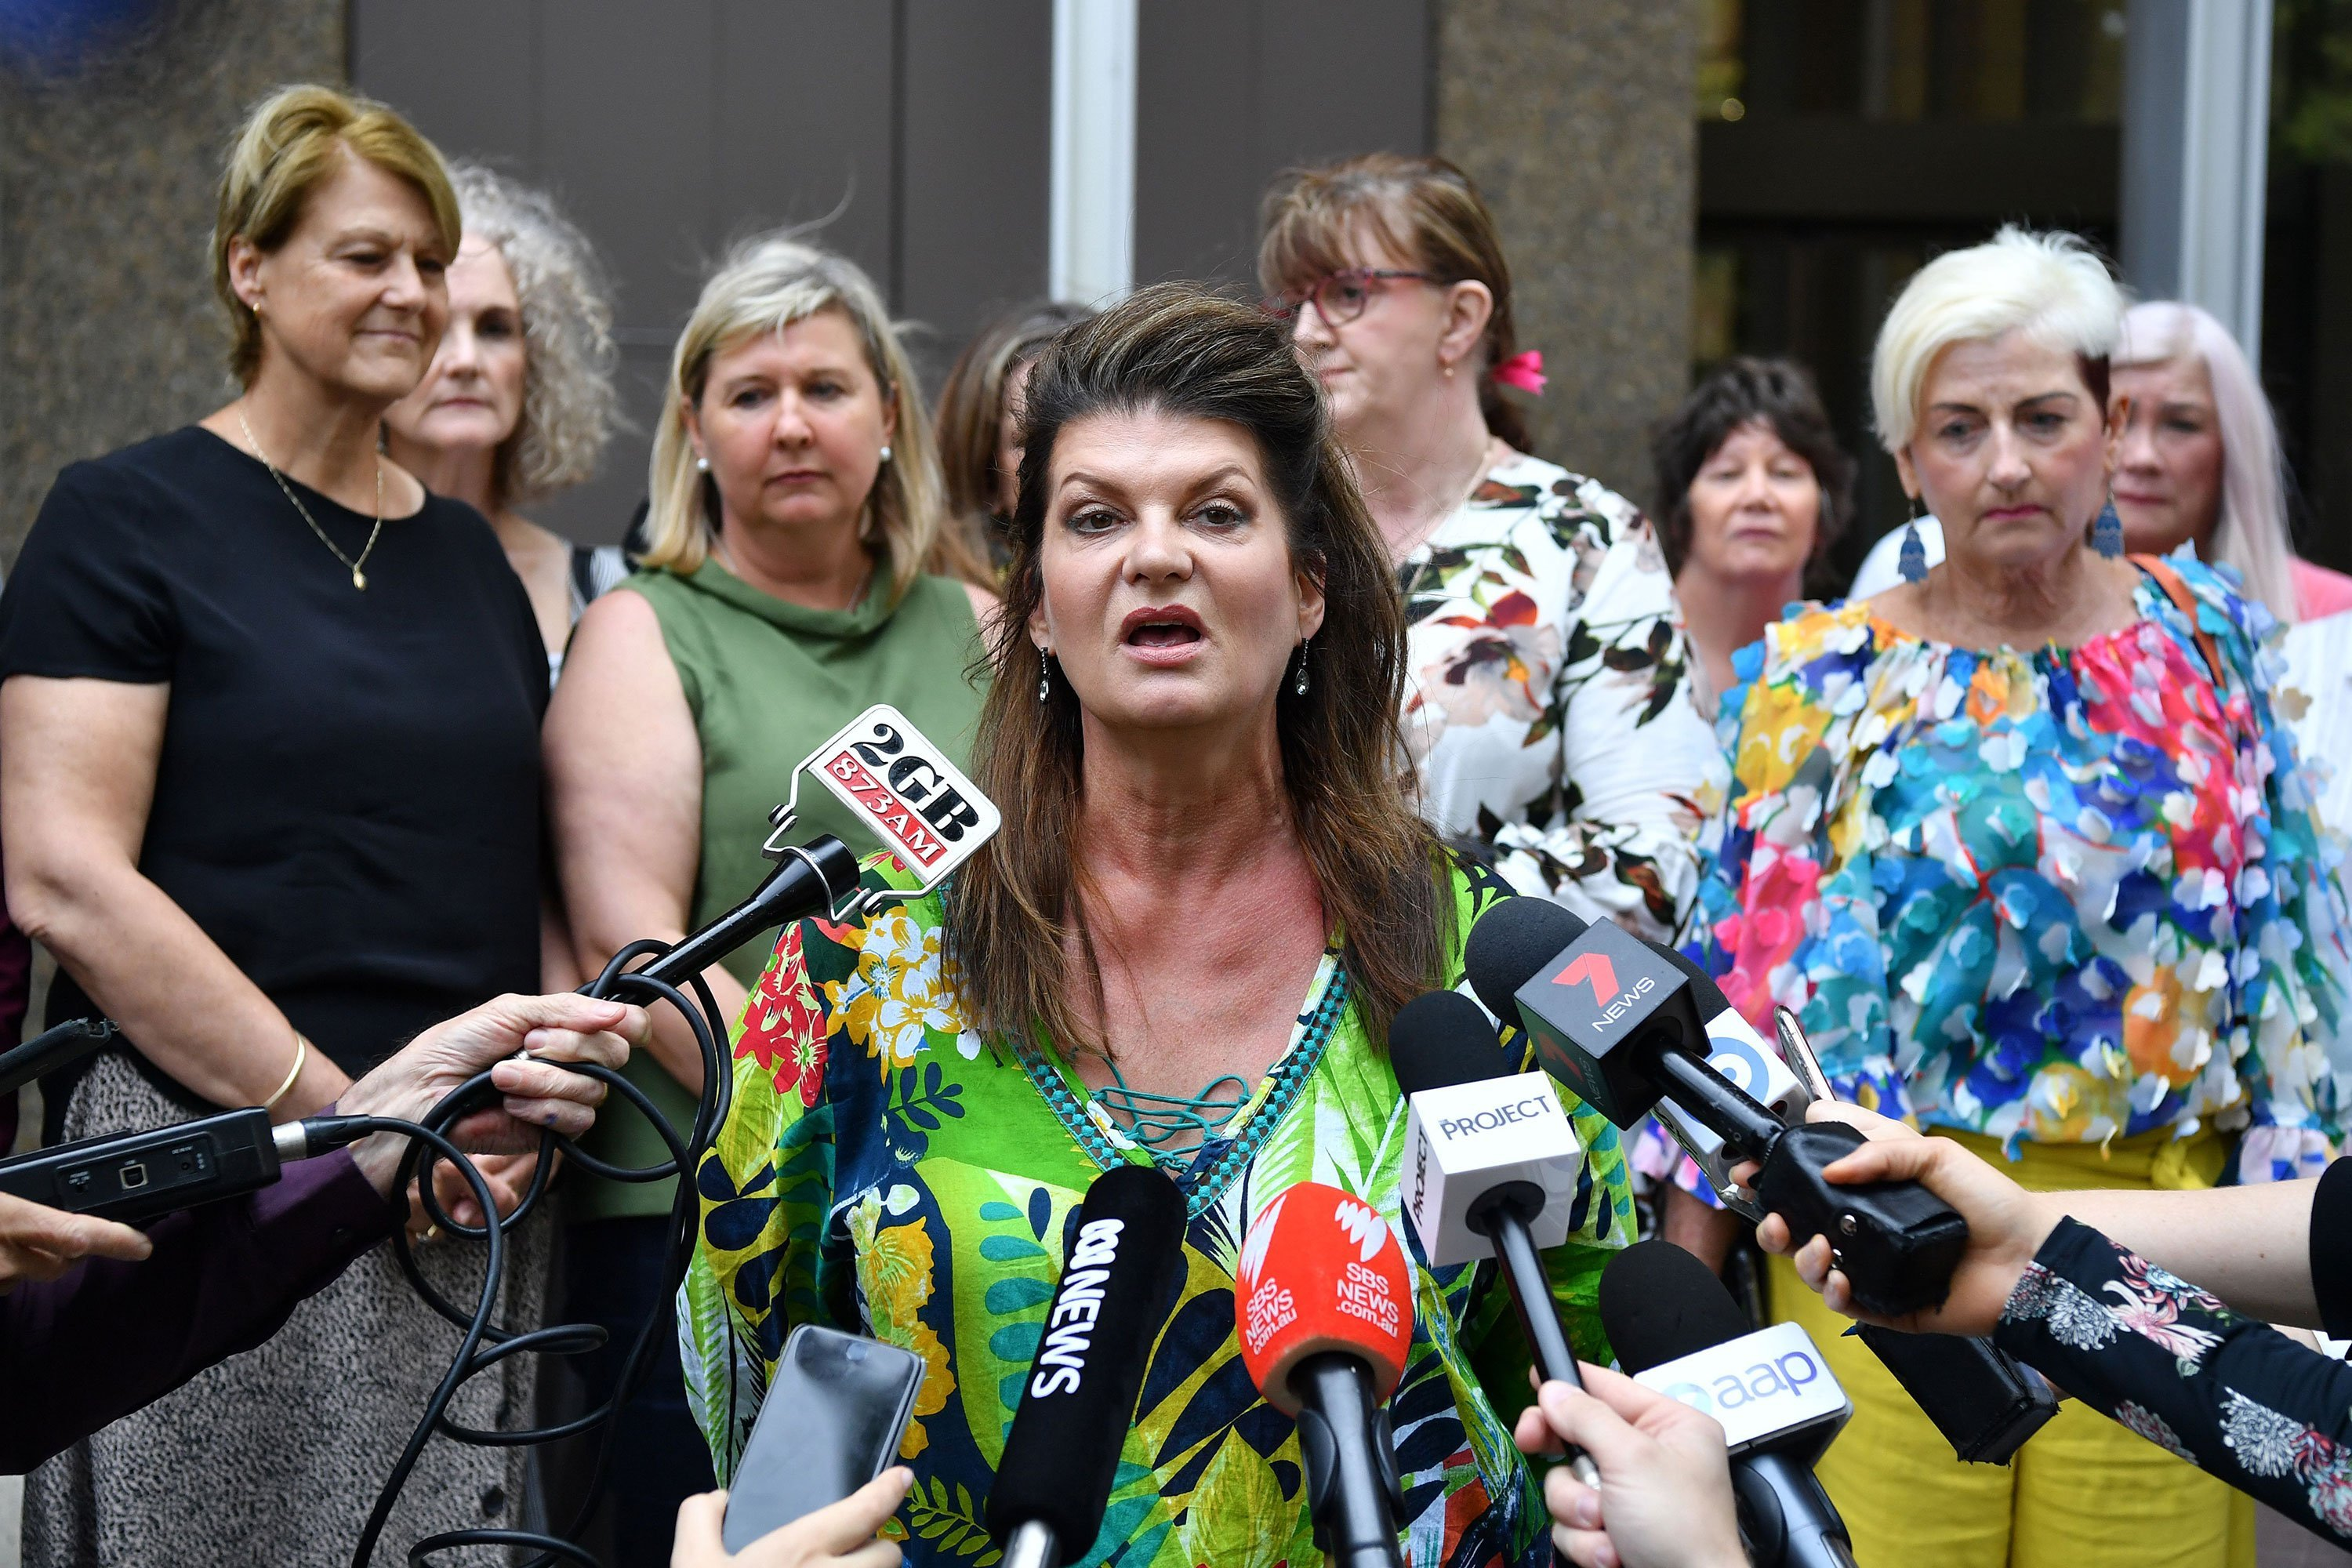 Fight is not over, says winner of vaginal mesh implant court victory